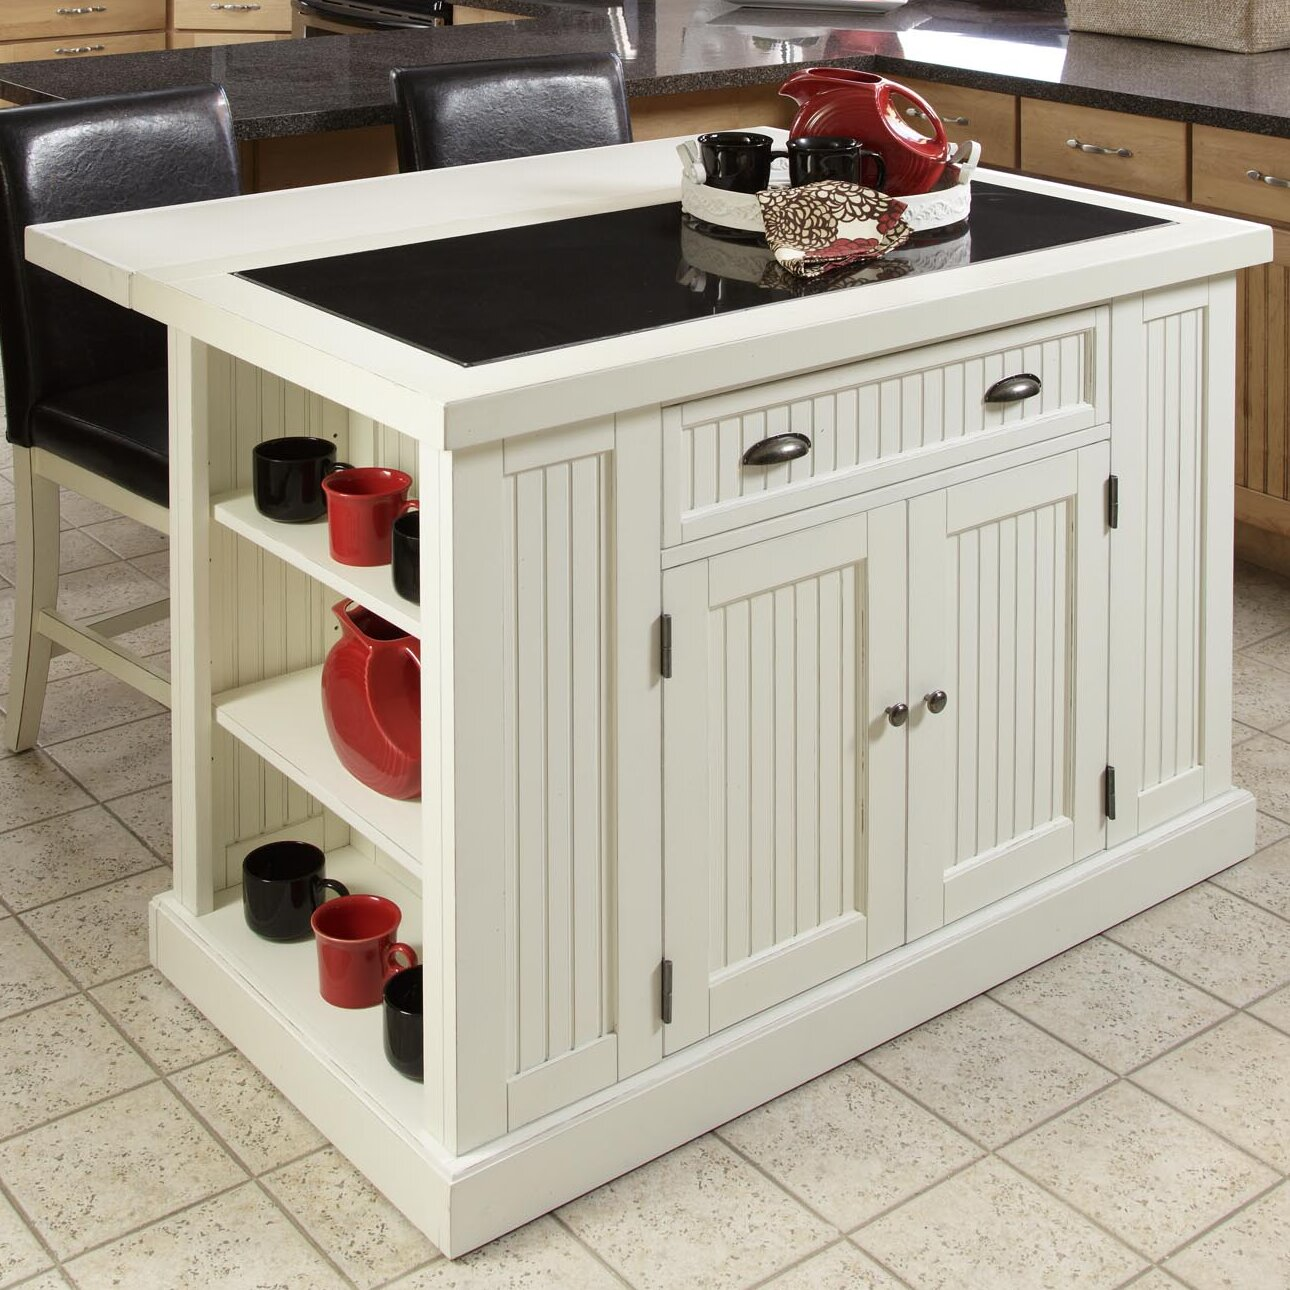 Breakfast Bar Coastal Kitchen Islands Carts You Ll Love In 2021 Wayfair